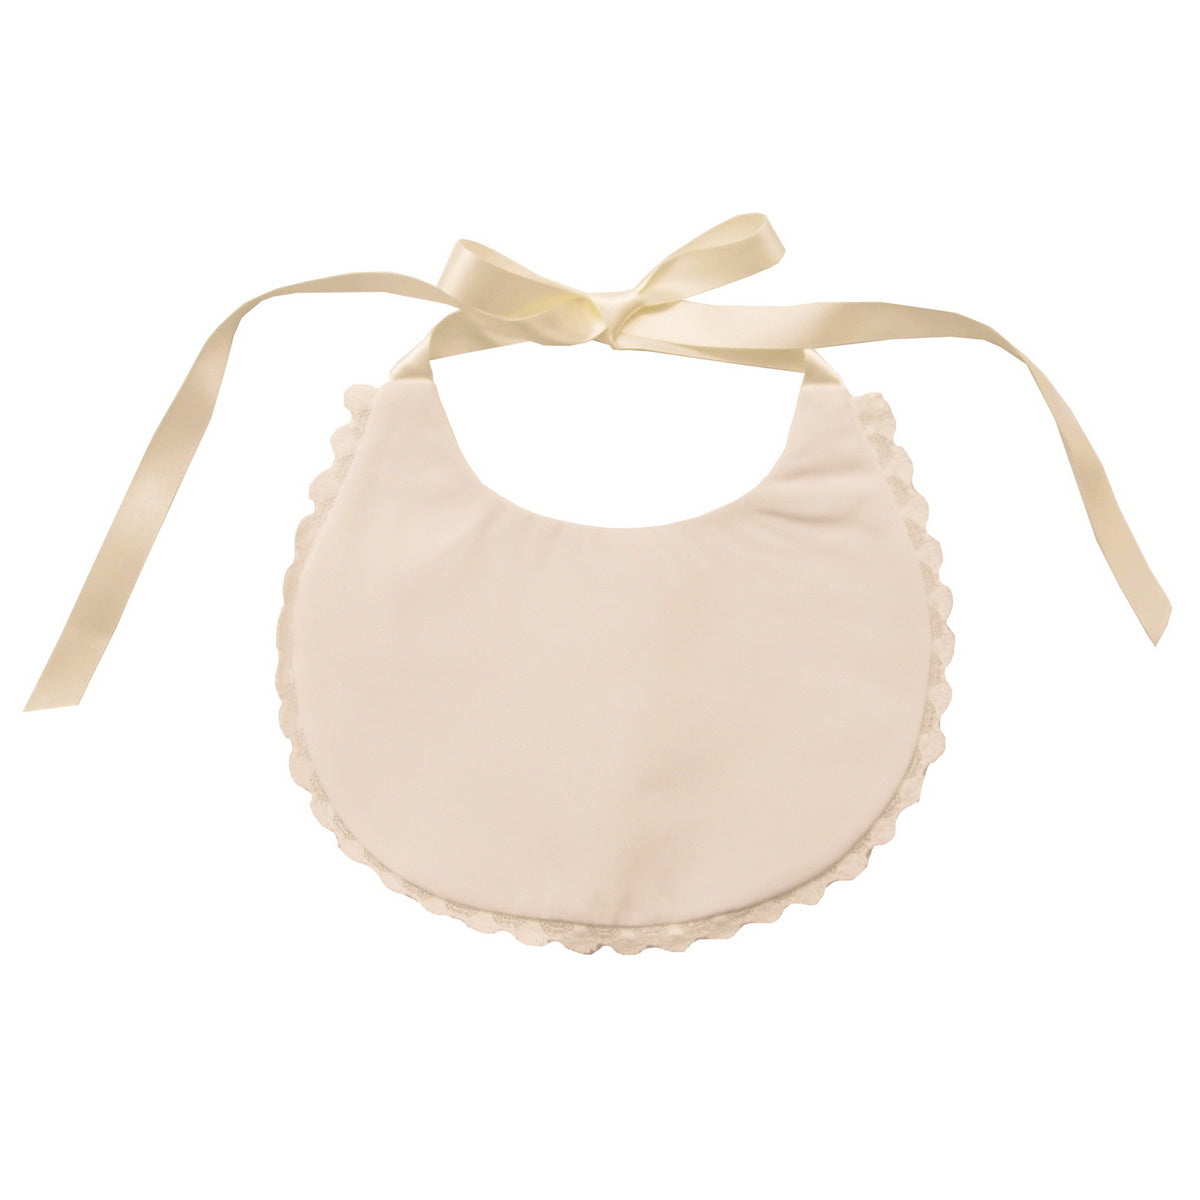 Sue hill christening bib with lace trim ivory